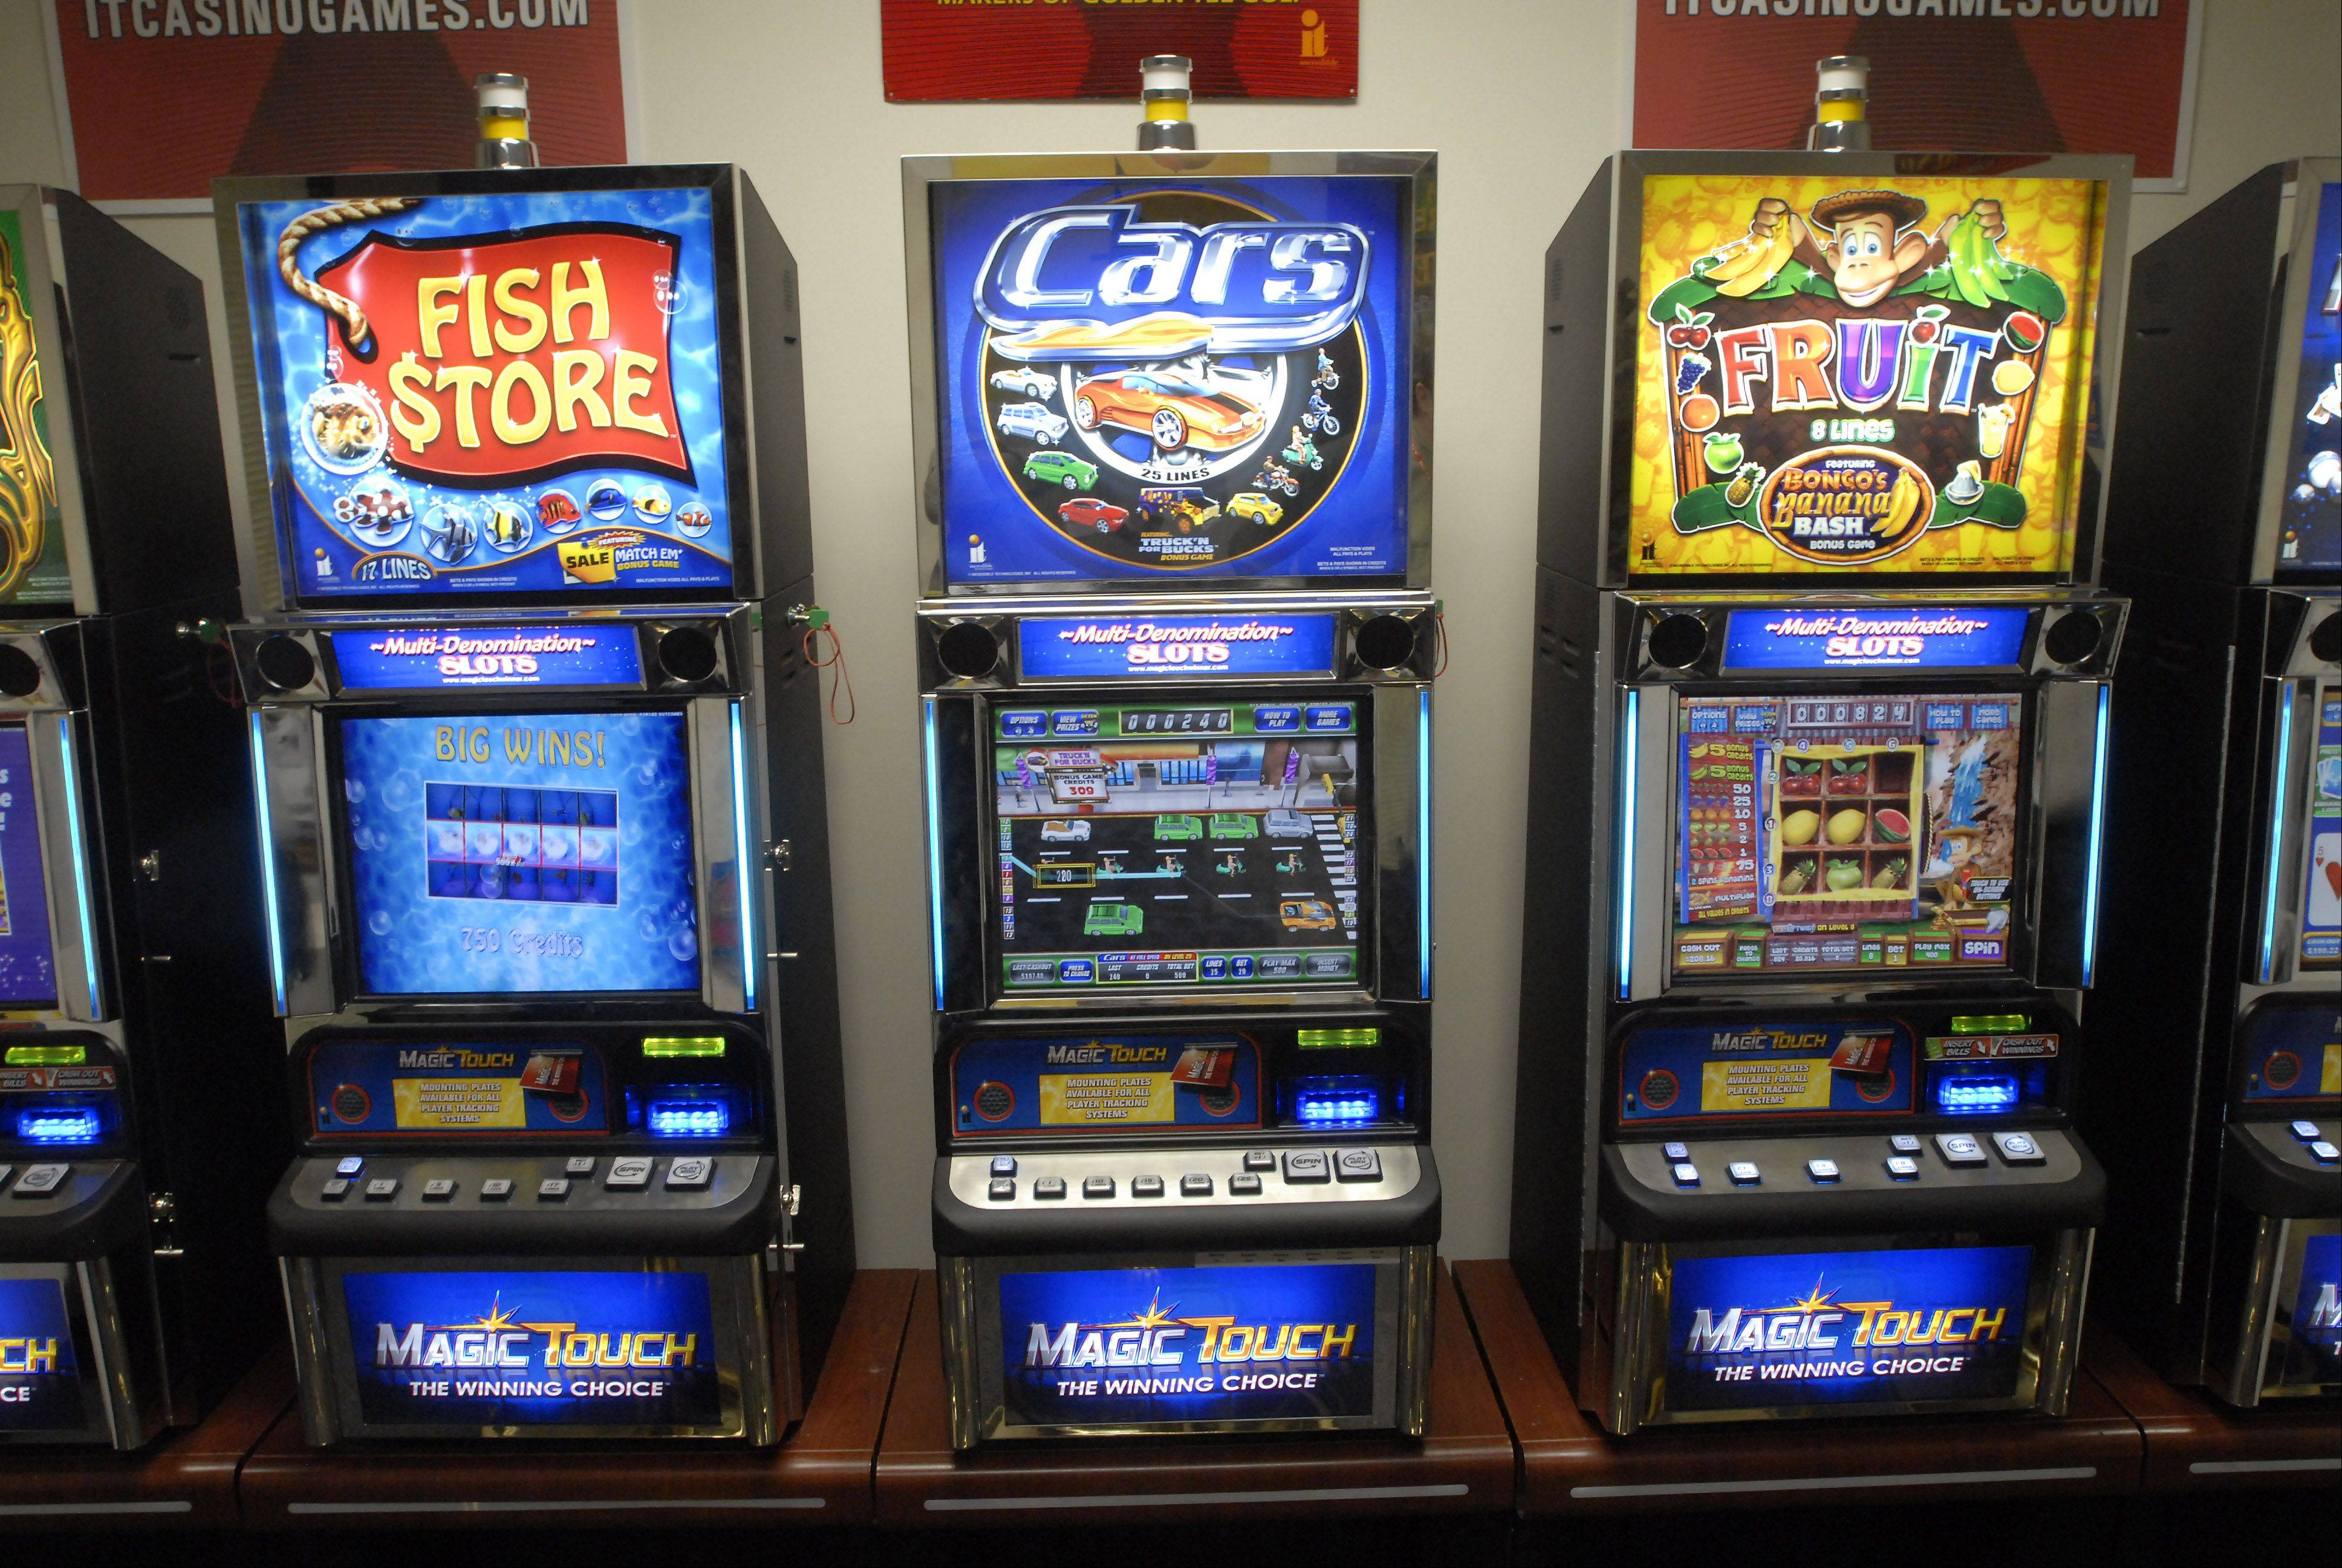 Barrington leaders are expected to hear more public input and resume discussions tonight on whether to reverse the village board's nearly four-year-old ban on video gambling in the community.